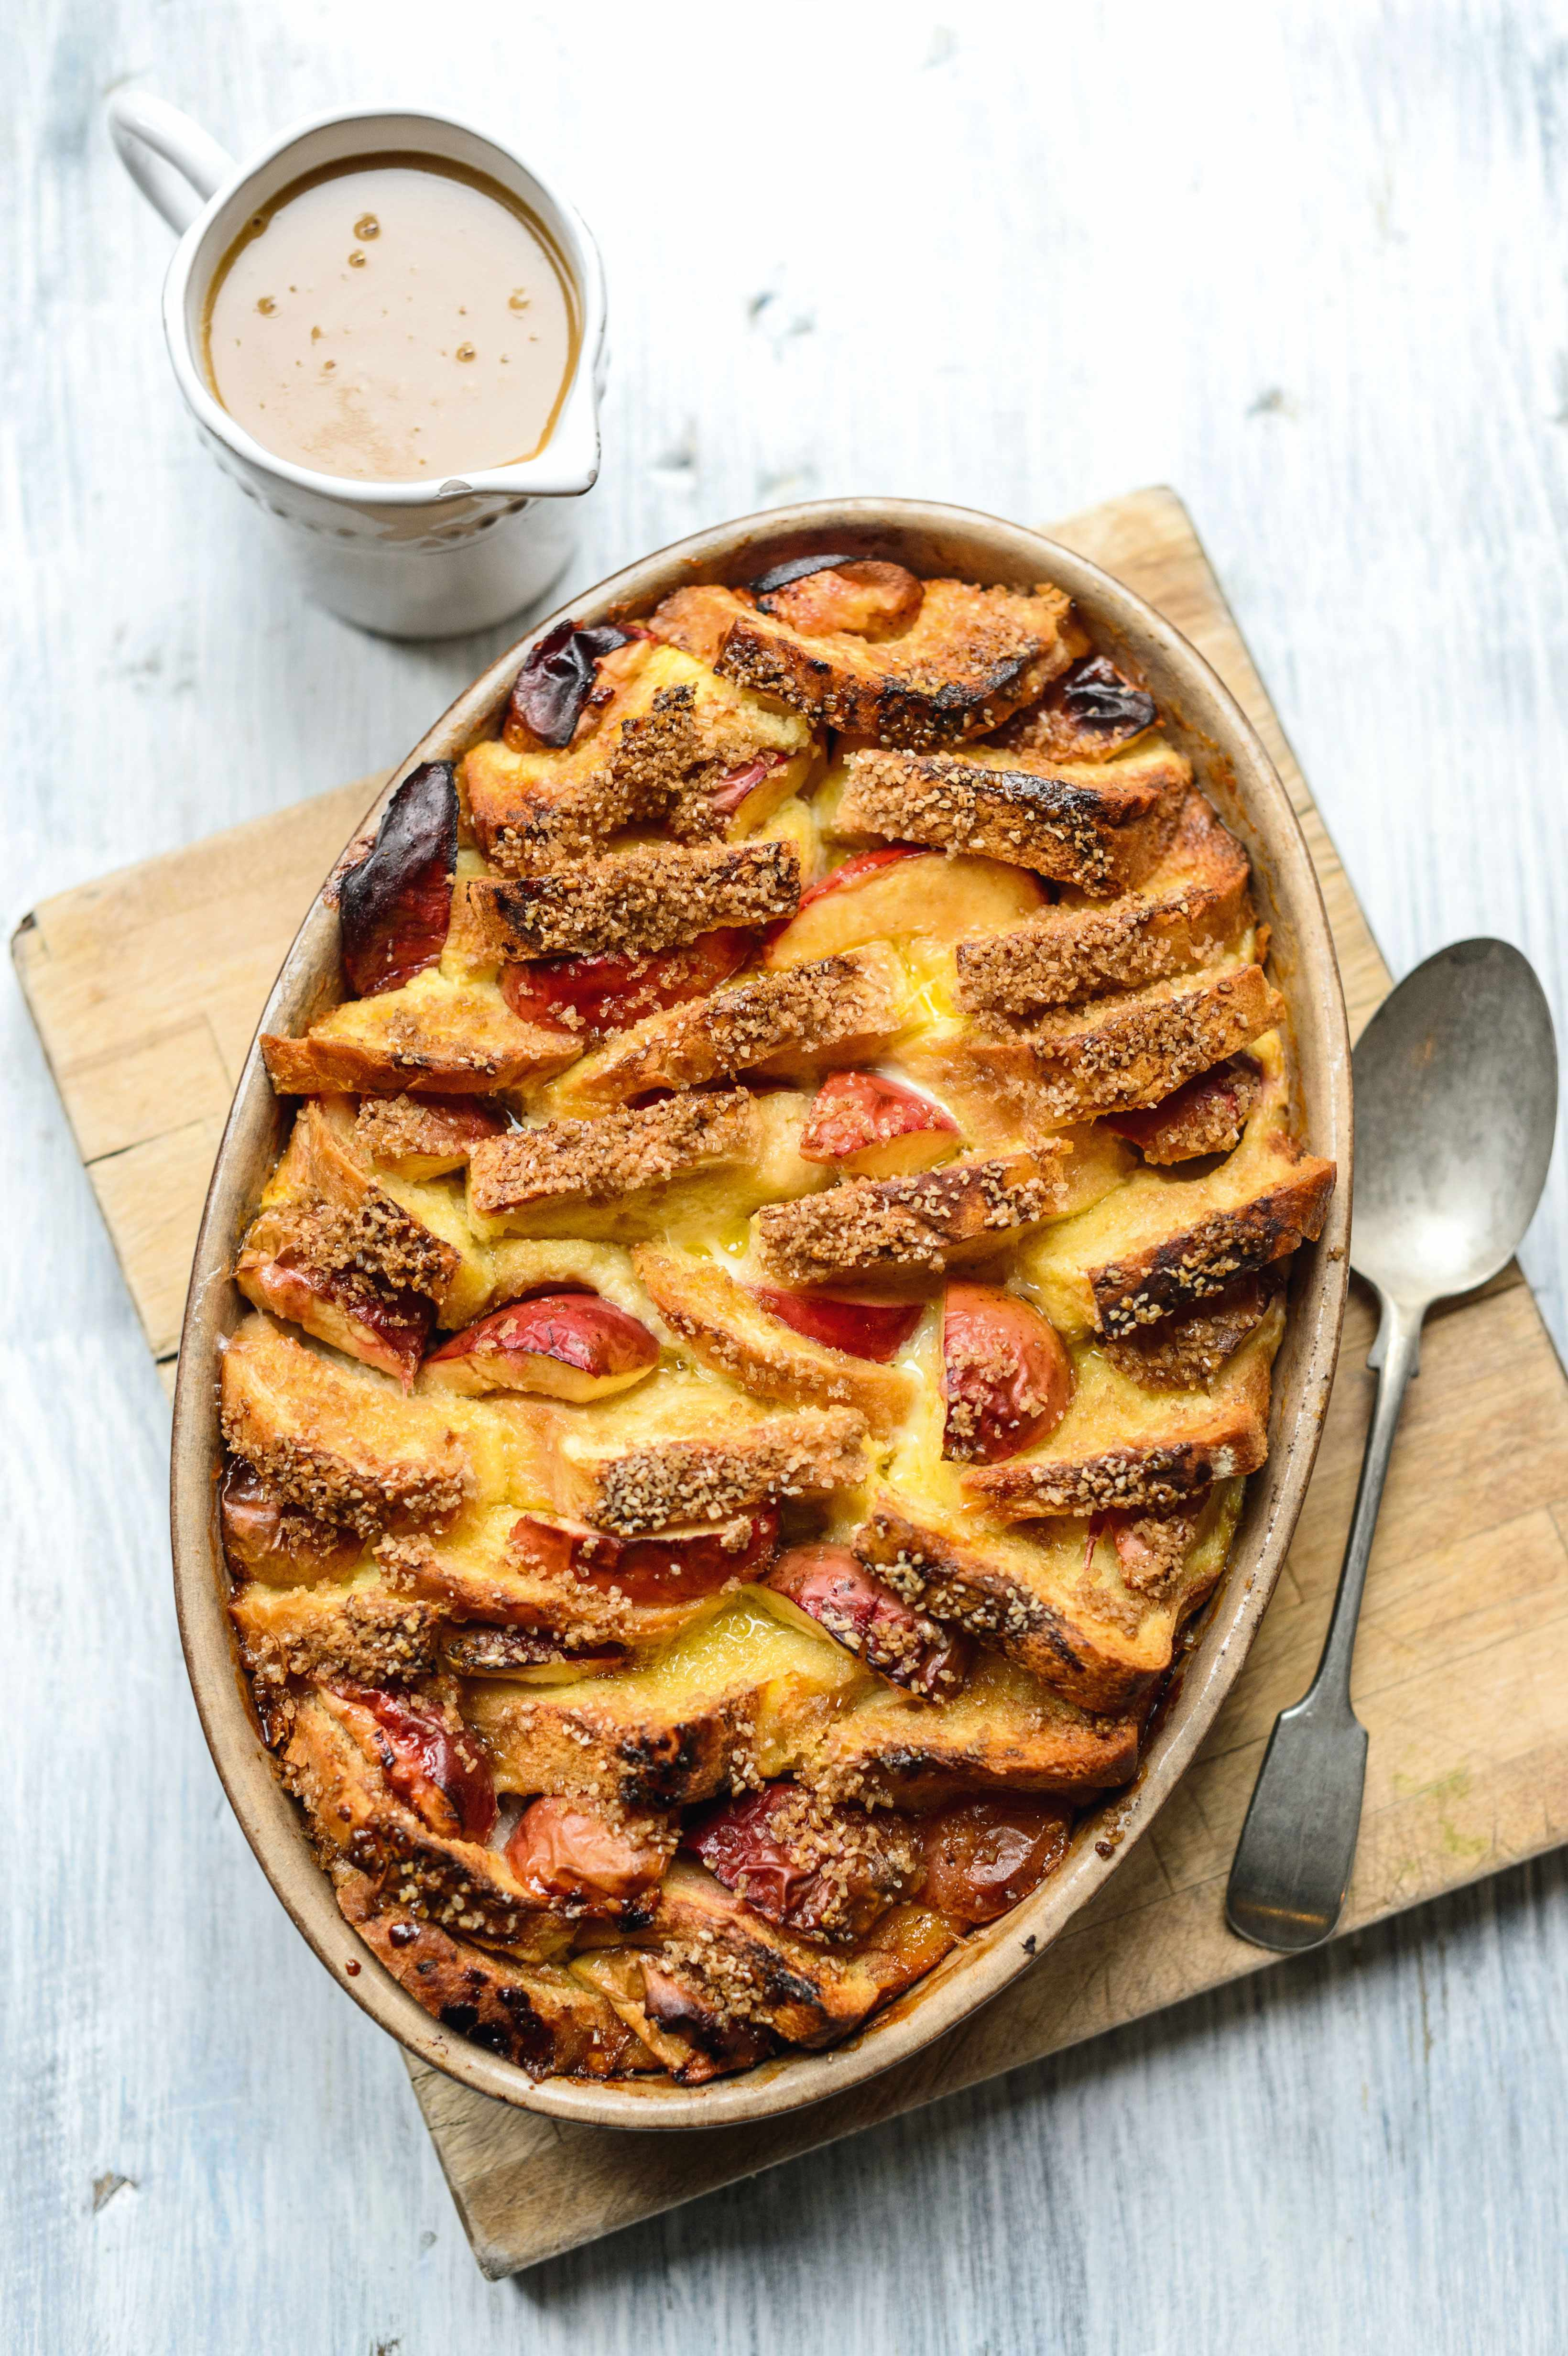 Apple bread and butter pudding with butterscotch sauce